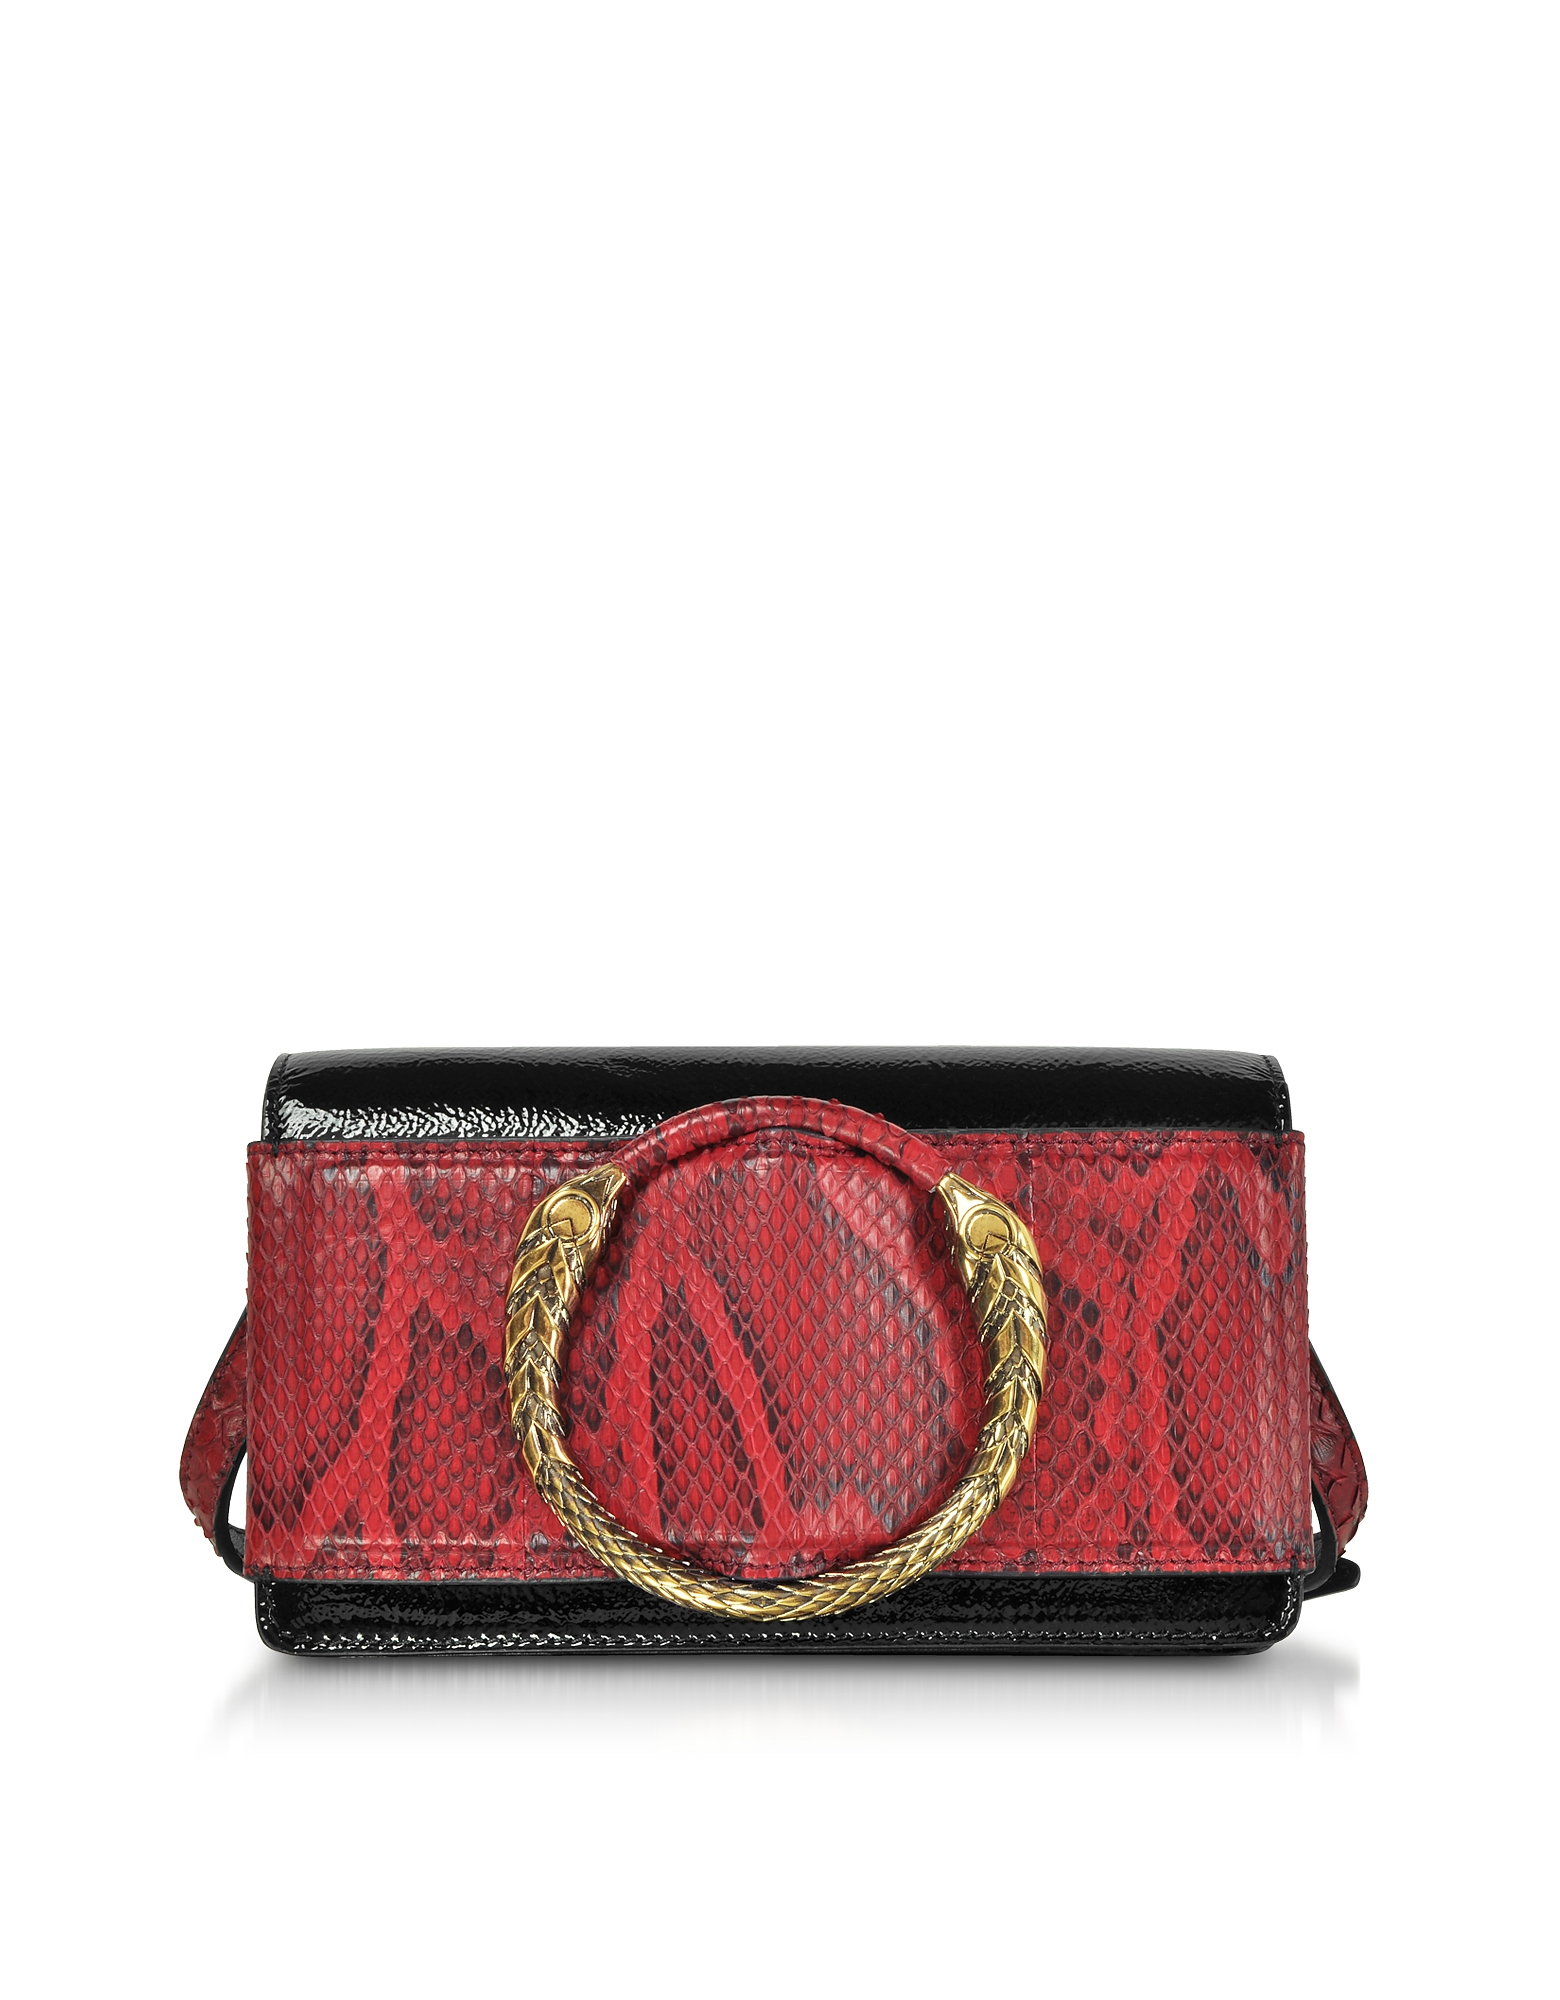 Roberto Cavalli Handbags, Black Patent Leather and Cherry Python Small Shoulder Bag